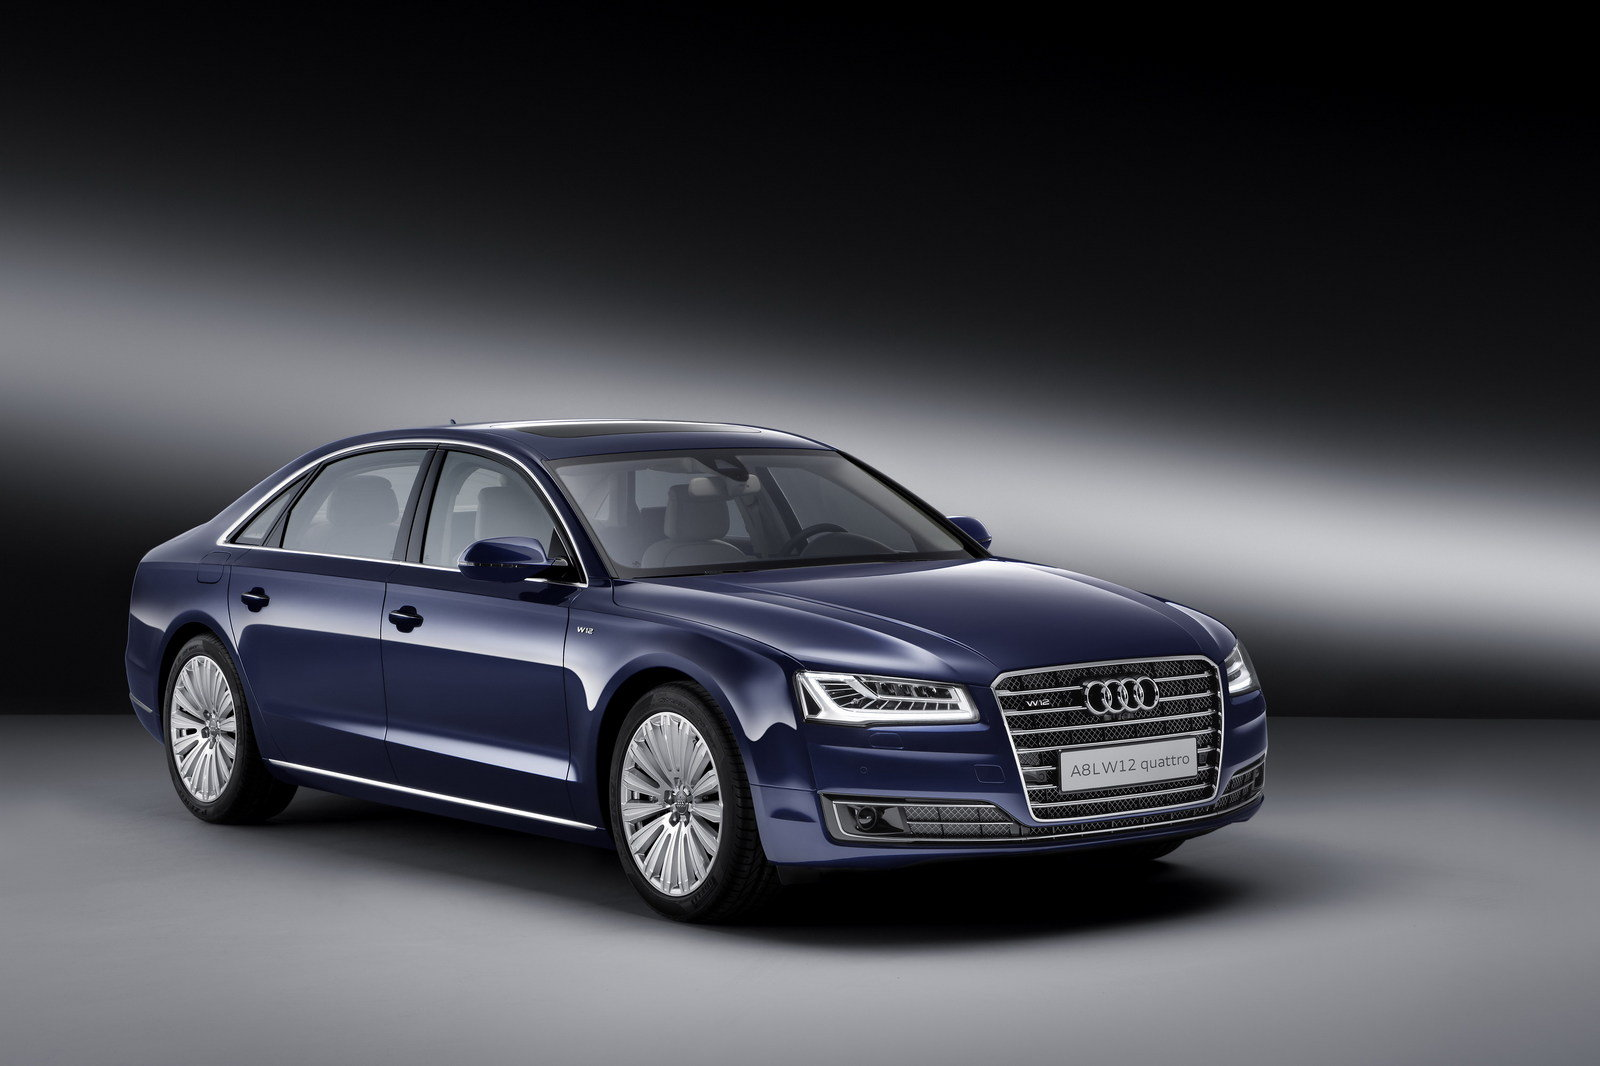 2014 audi a8 exclusive concept review top speed. Black Bedroom Furniture Sets. Home Design Ideas